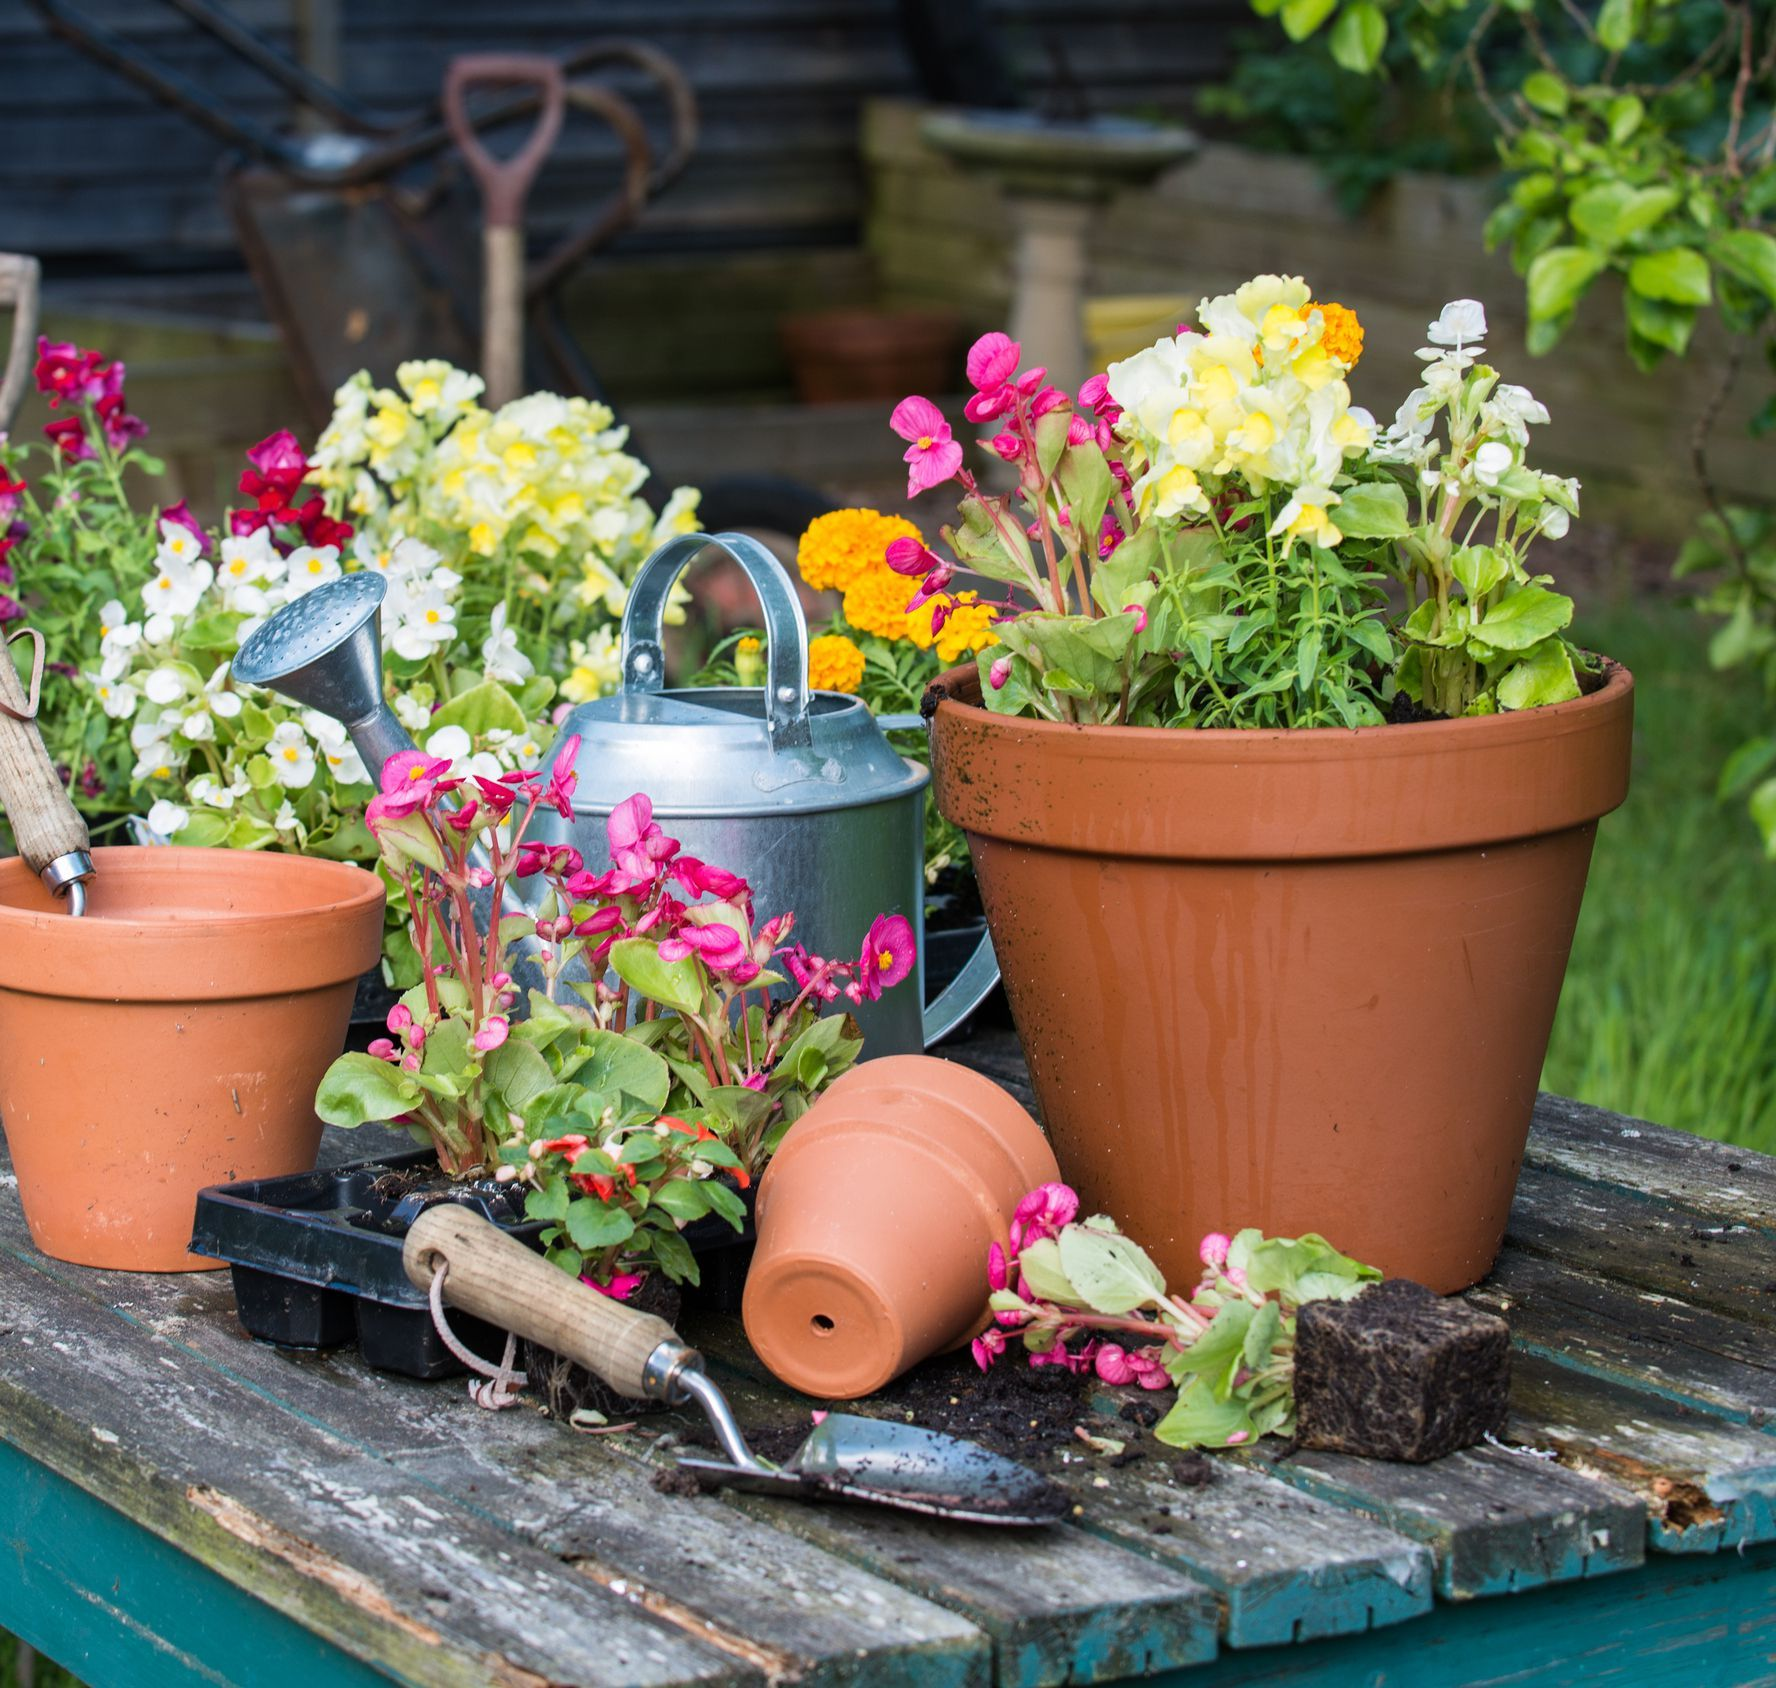 Learn How To Avoid Drowning The Plants In Your Container Garden